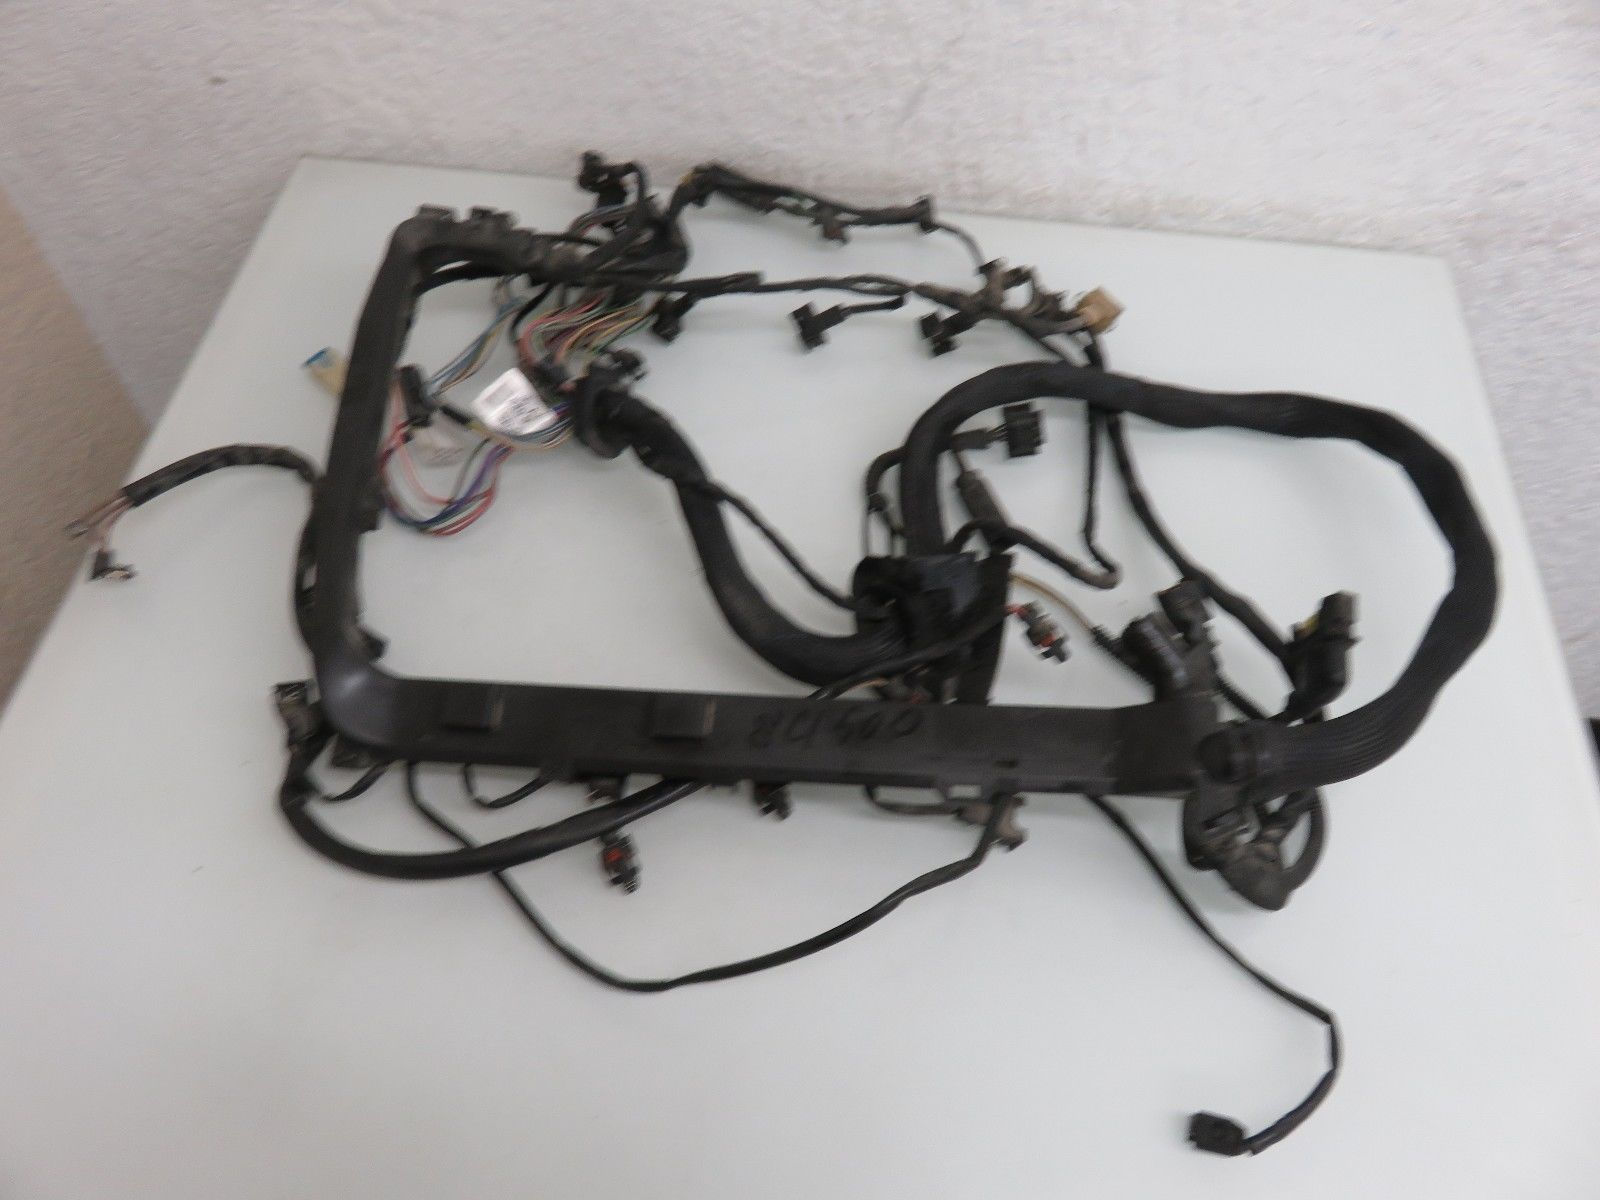 Wondrous 00 06 Mercedes W220 S Class Engine Compartment Wire Wiring Harness Wiring Digital Resources Funapmognl